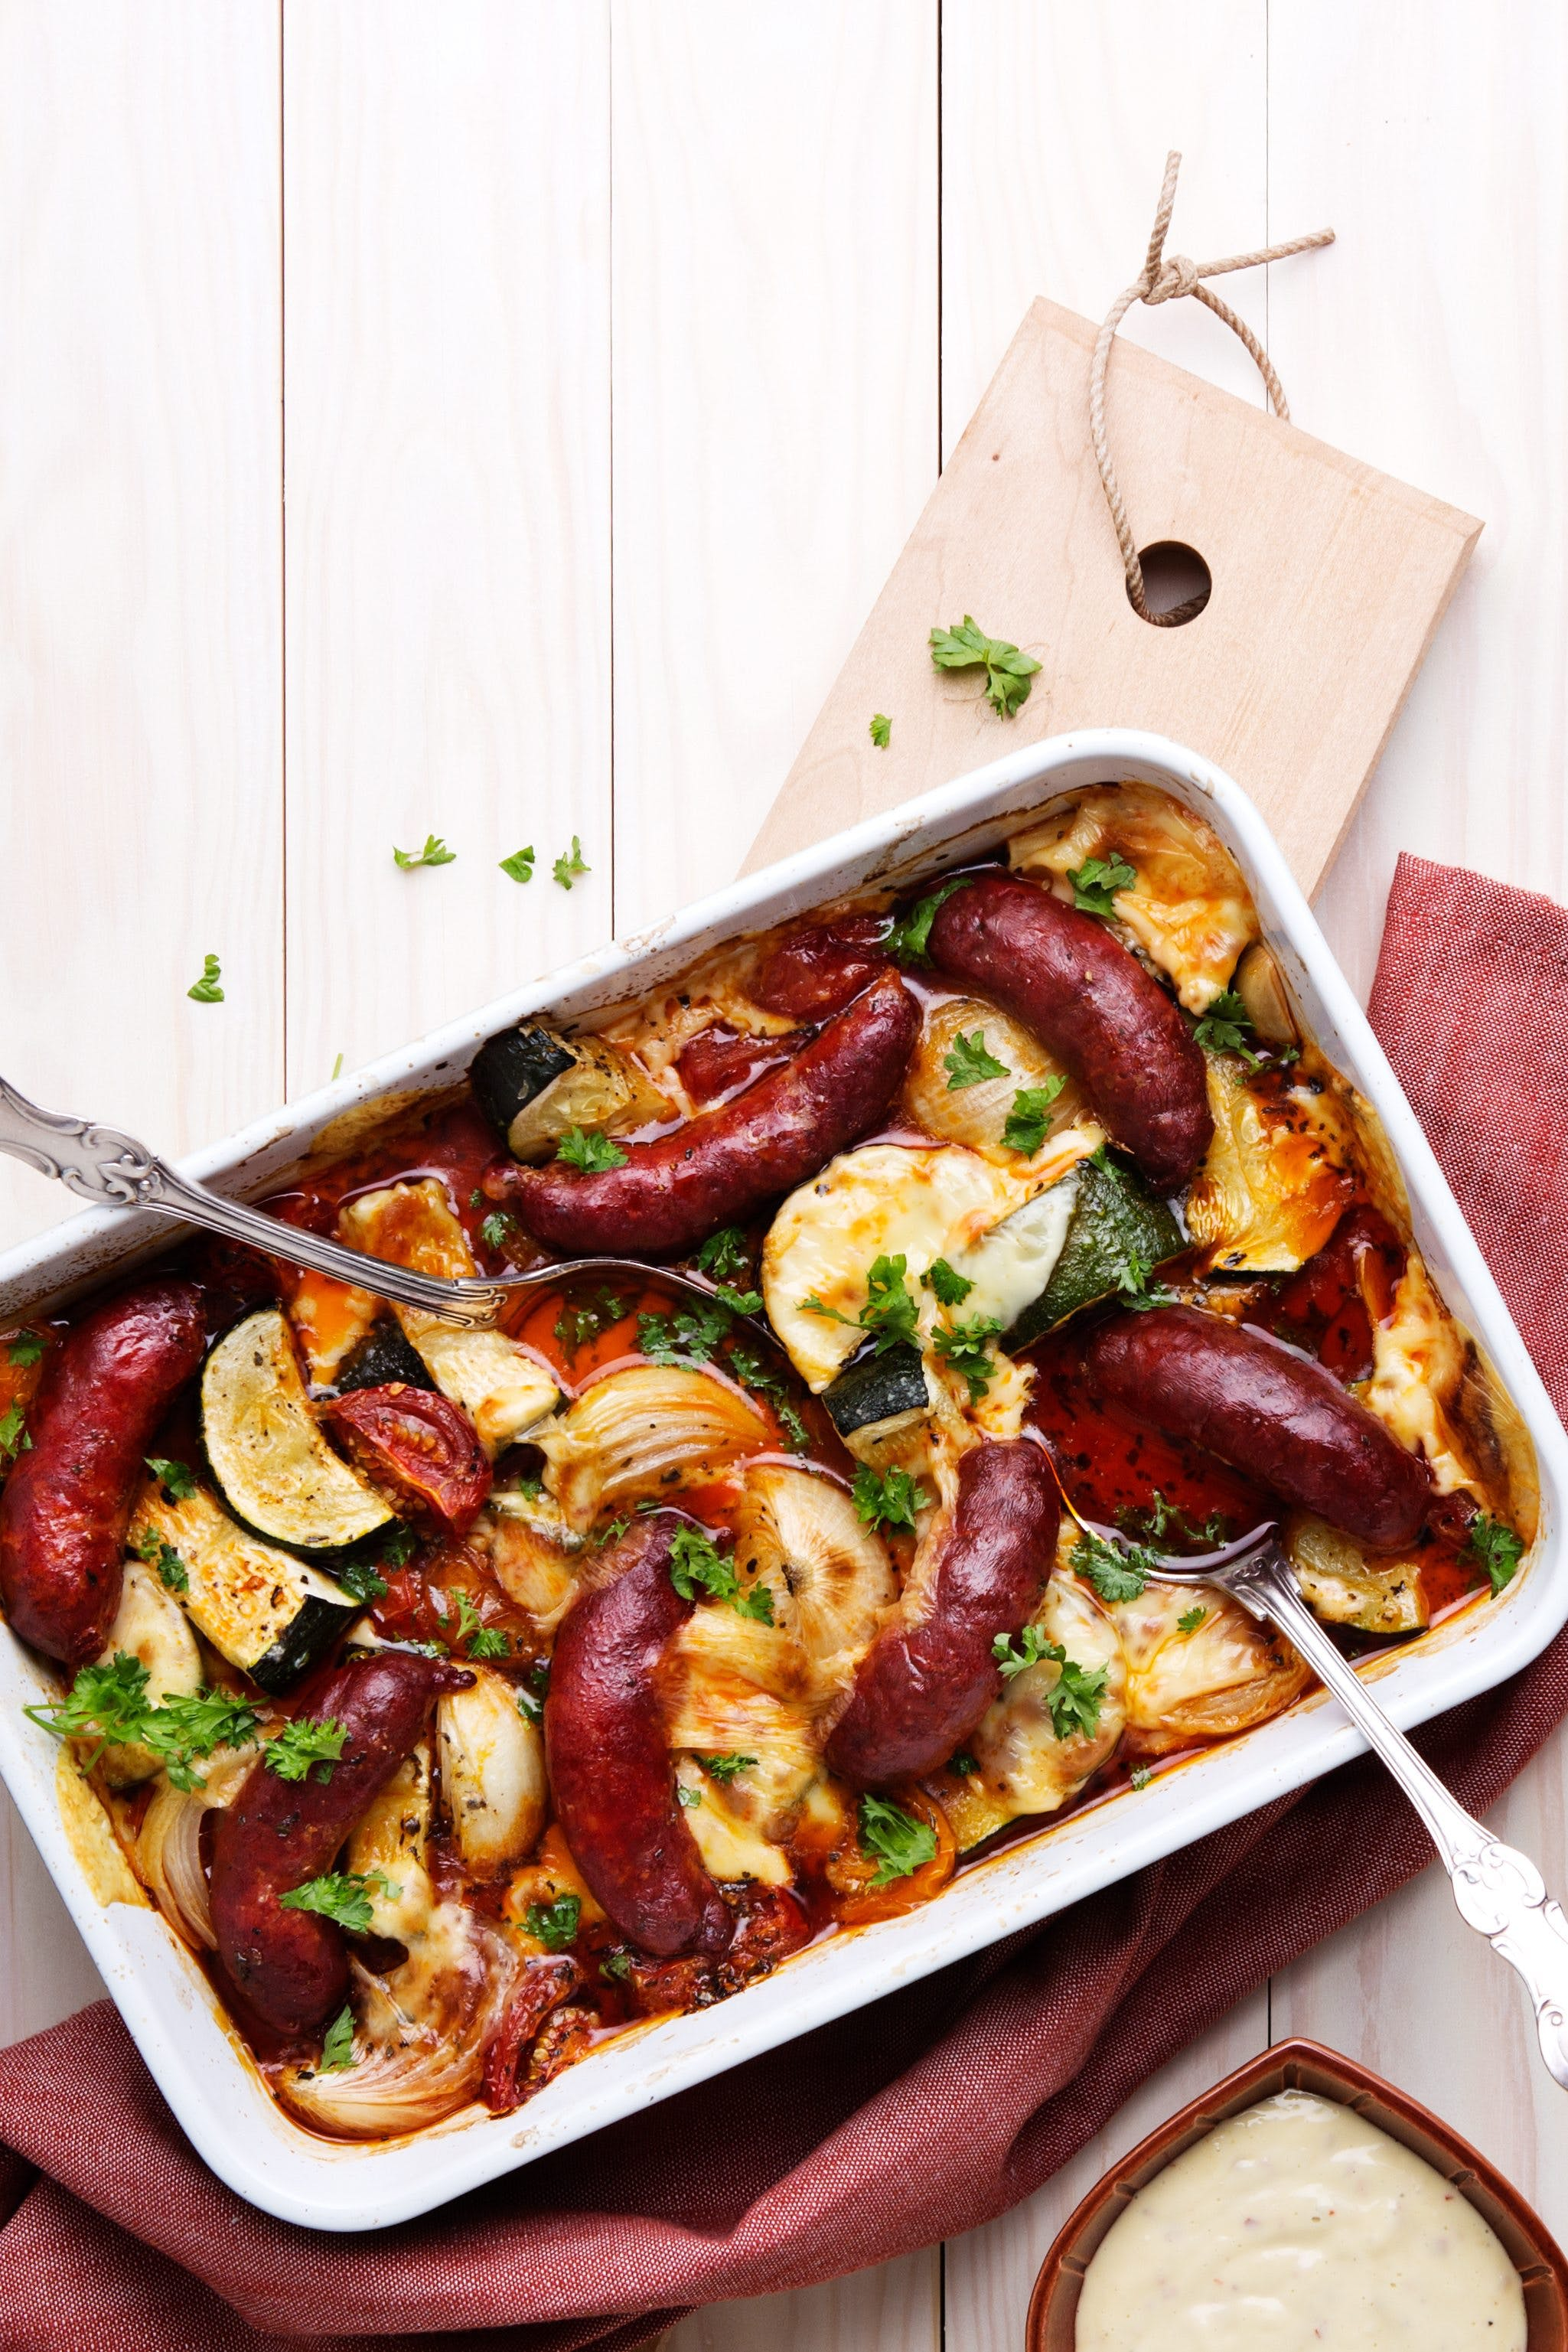 Oven-baked sausage with veggies